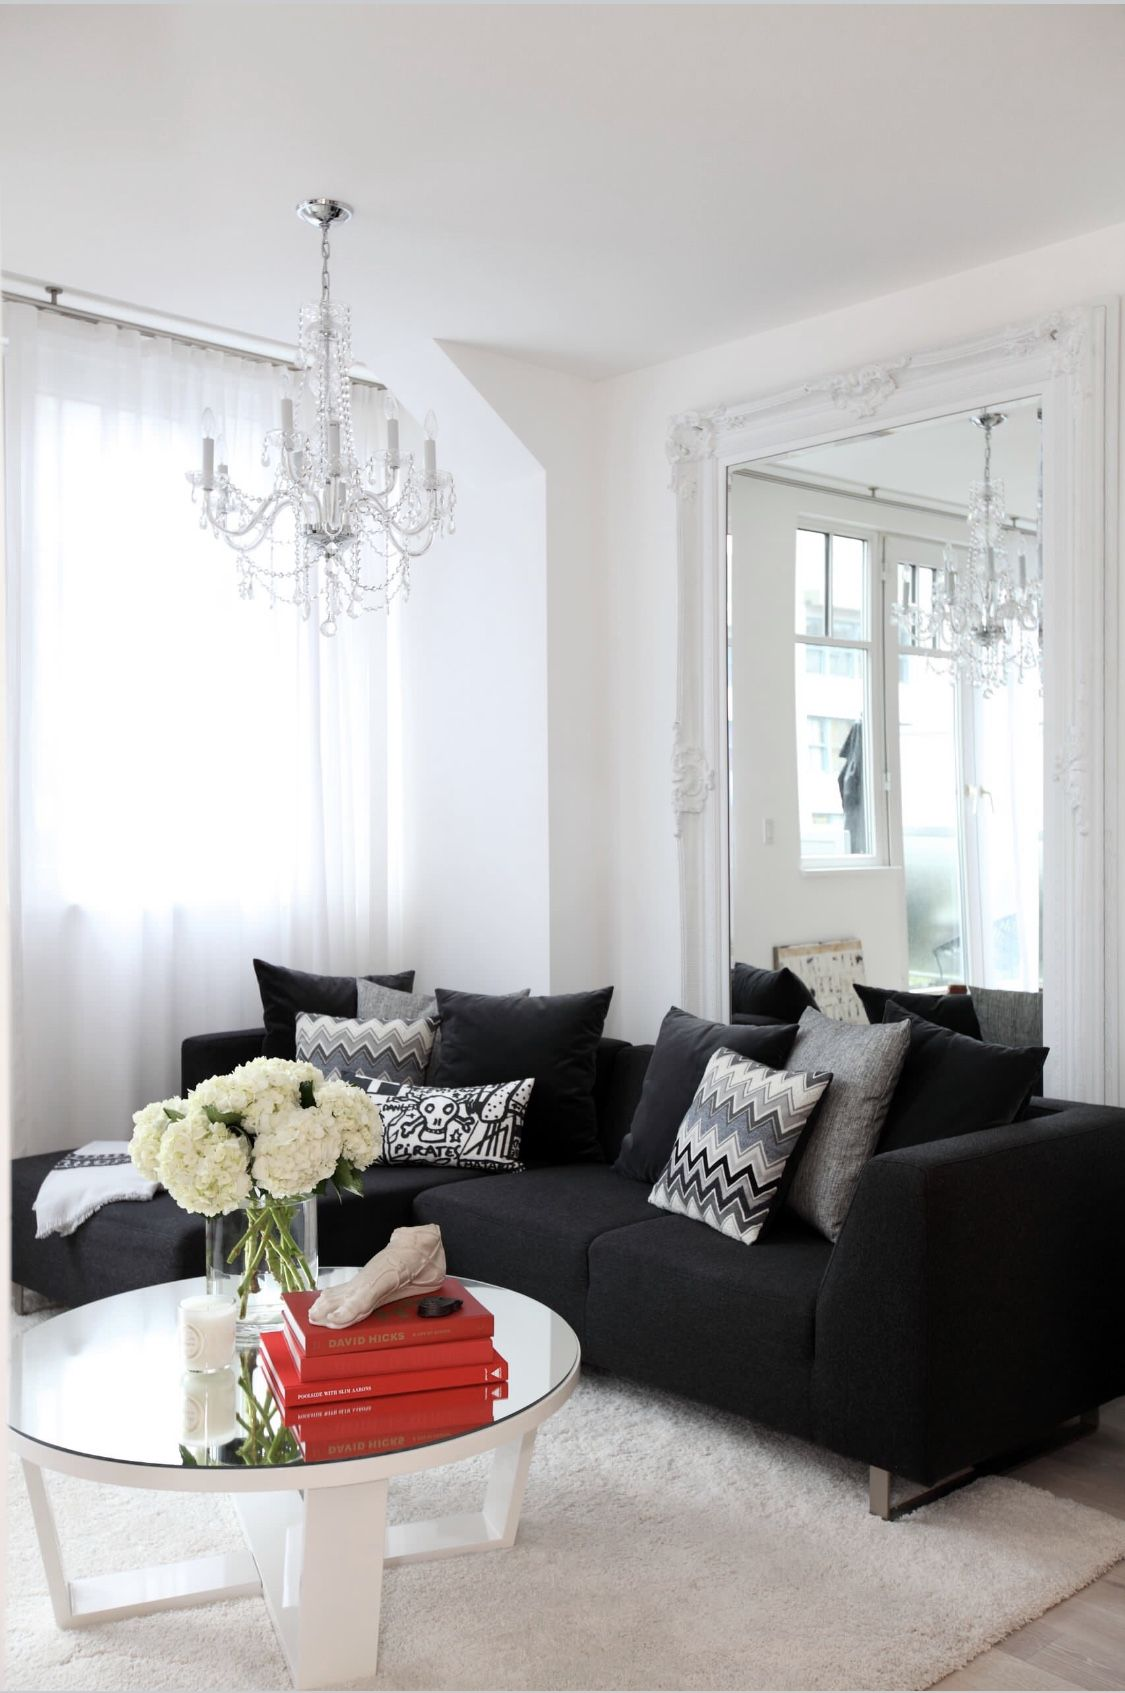 How To Style A Black Sofa Black Couch Decor Cozy Living Room